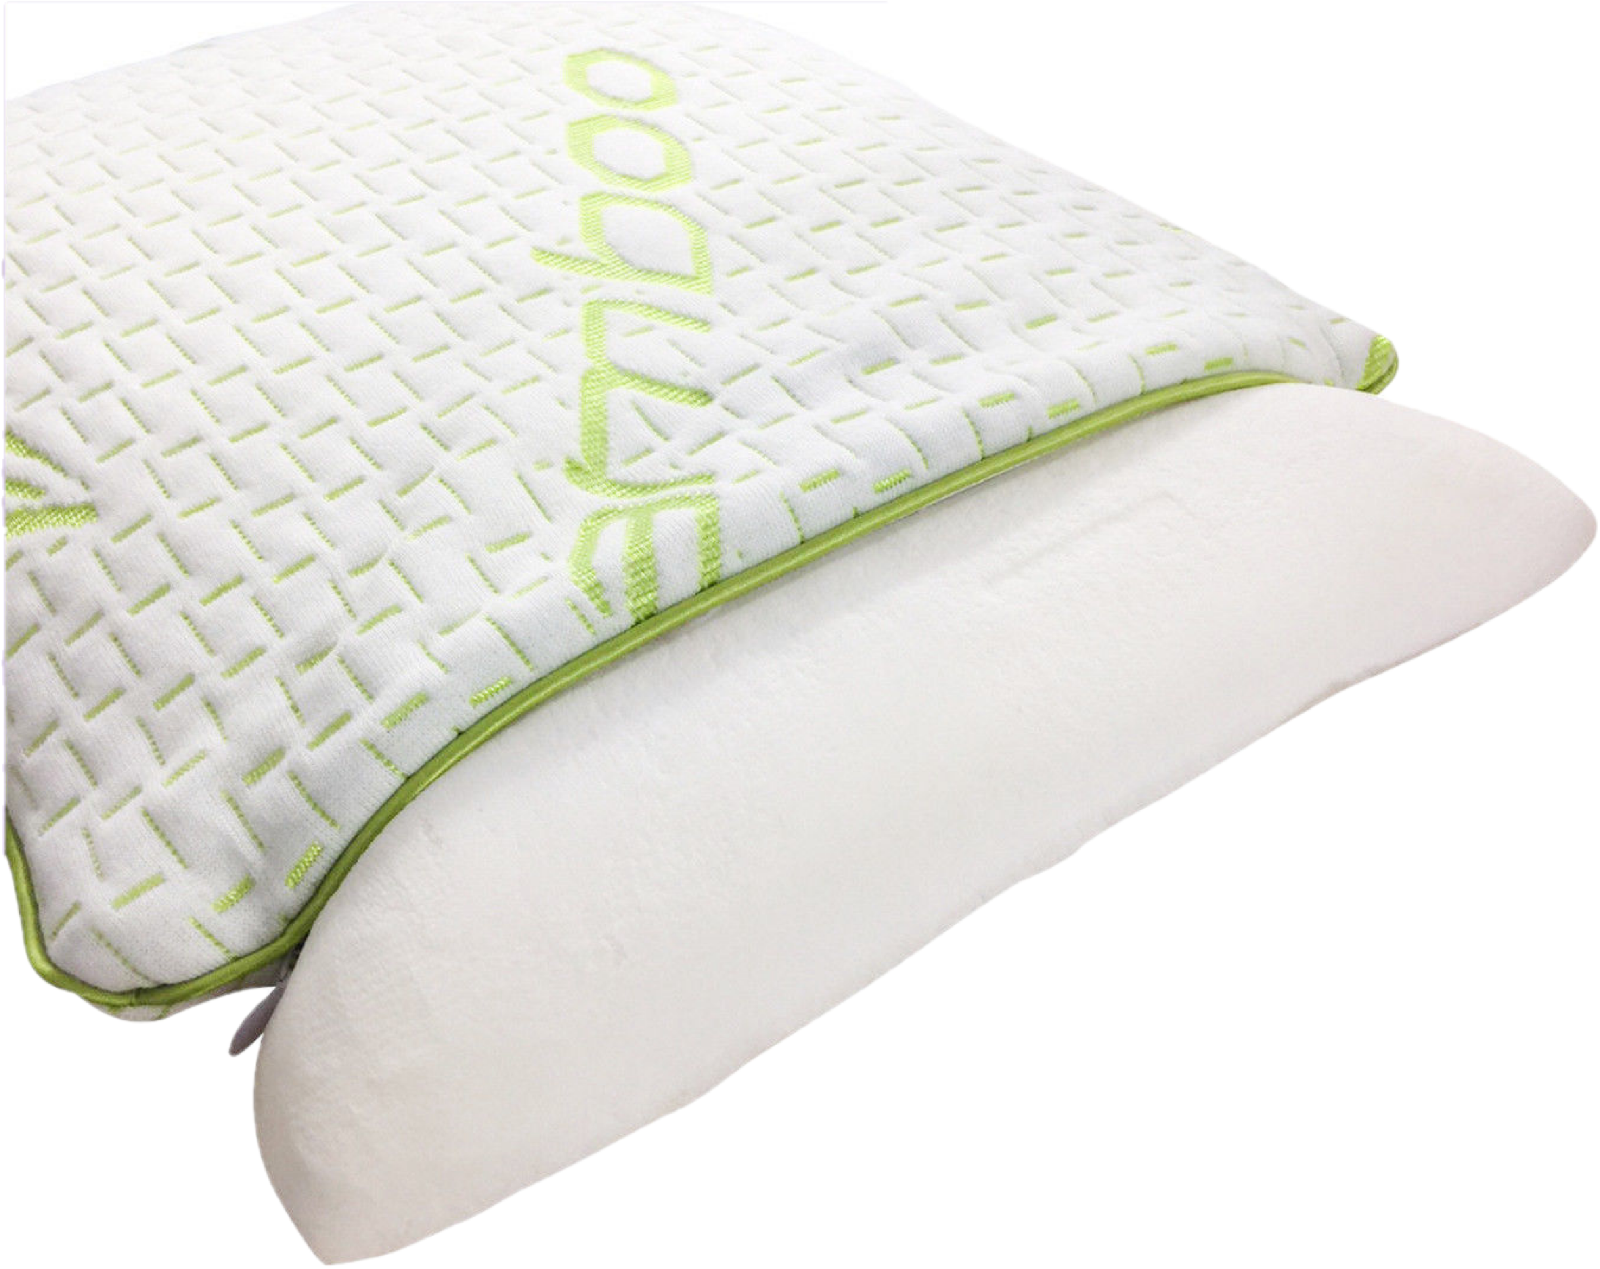 Bamboo Standard Memory Foam Cot Pillow Bed Baby Soft Toddler Sleeping Kid Pack 4 4